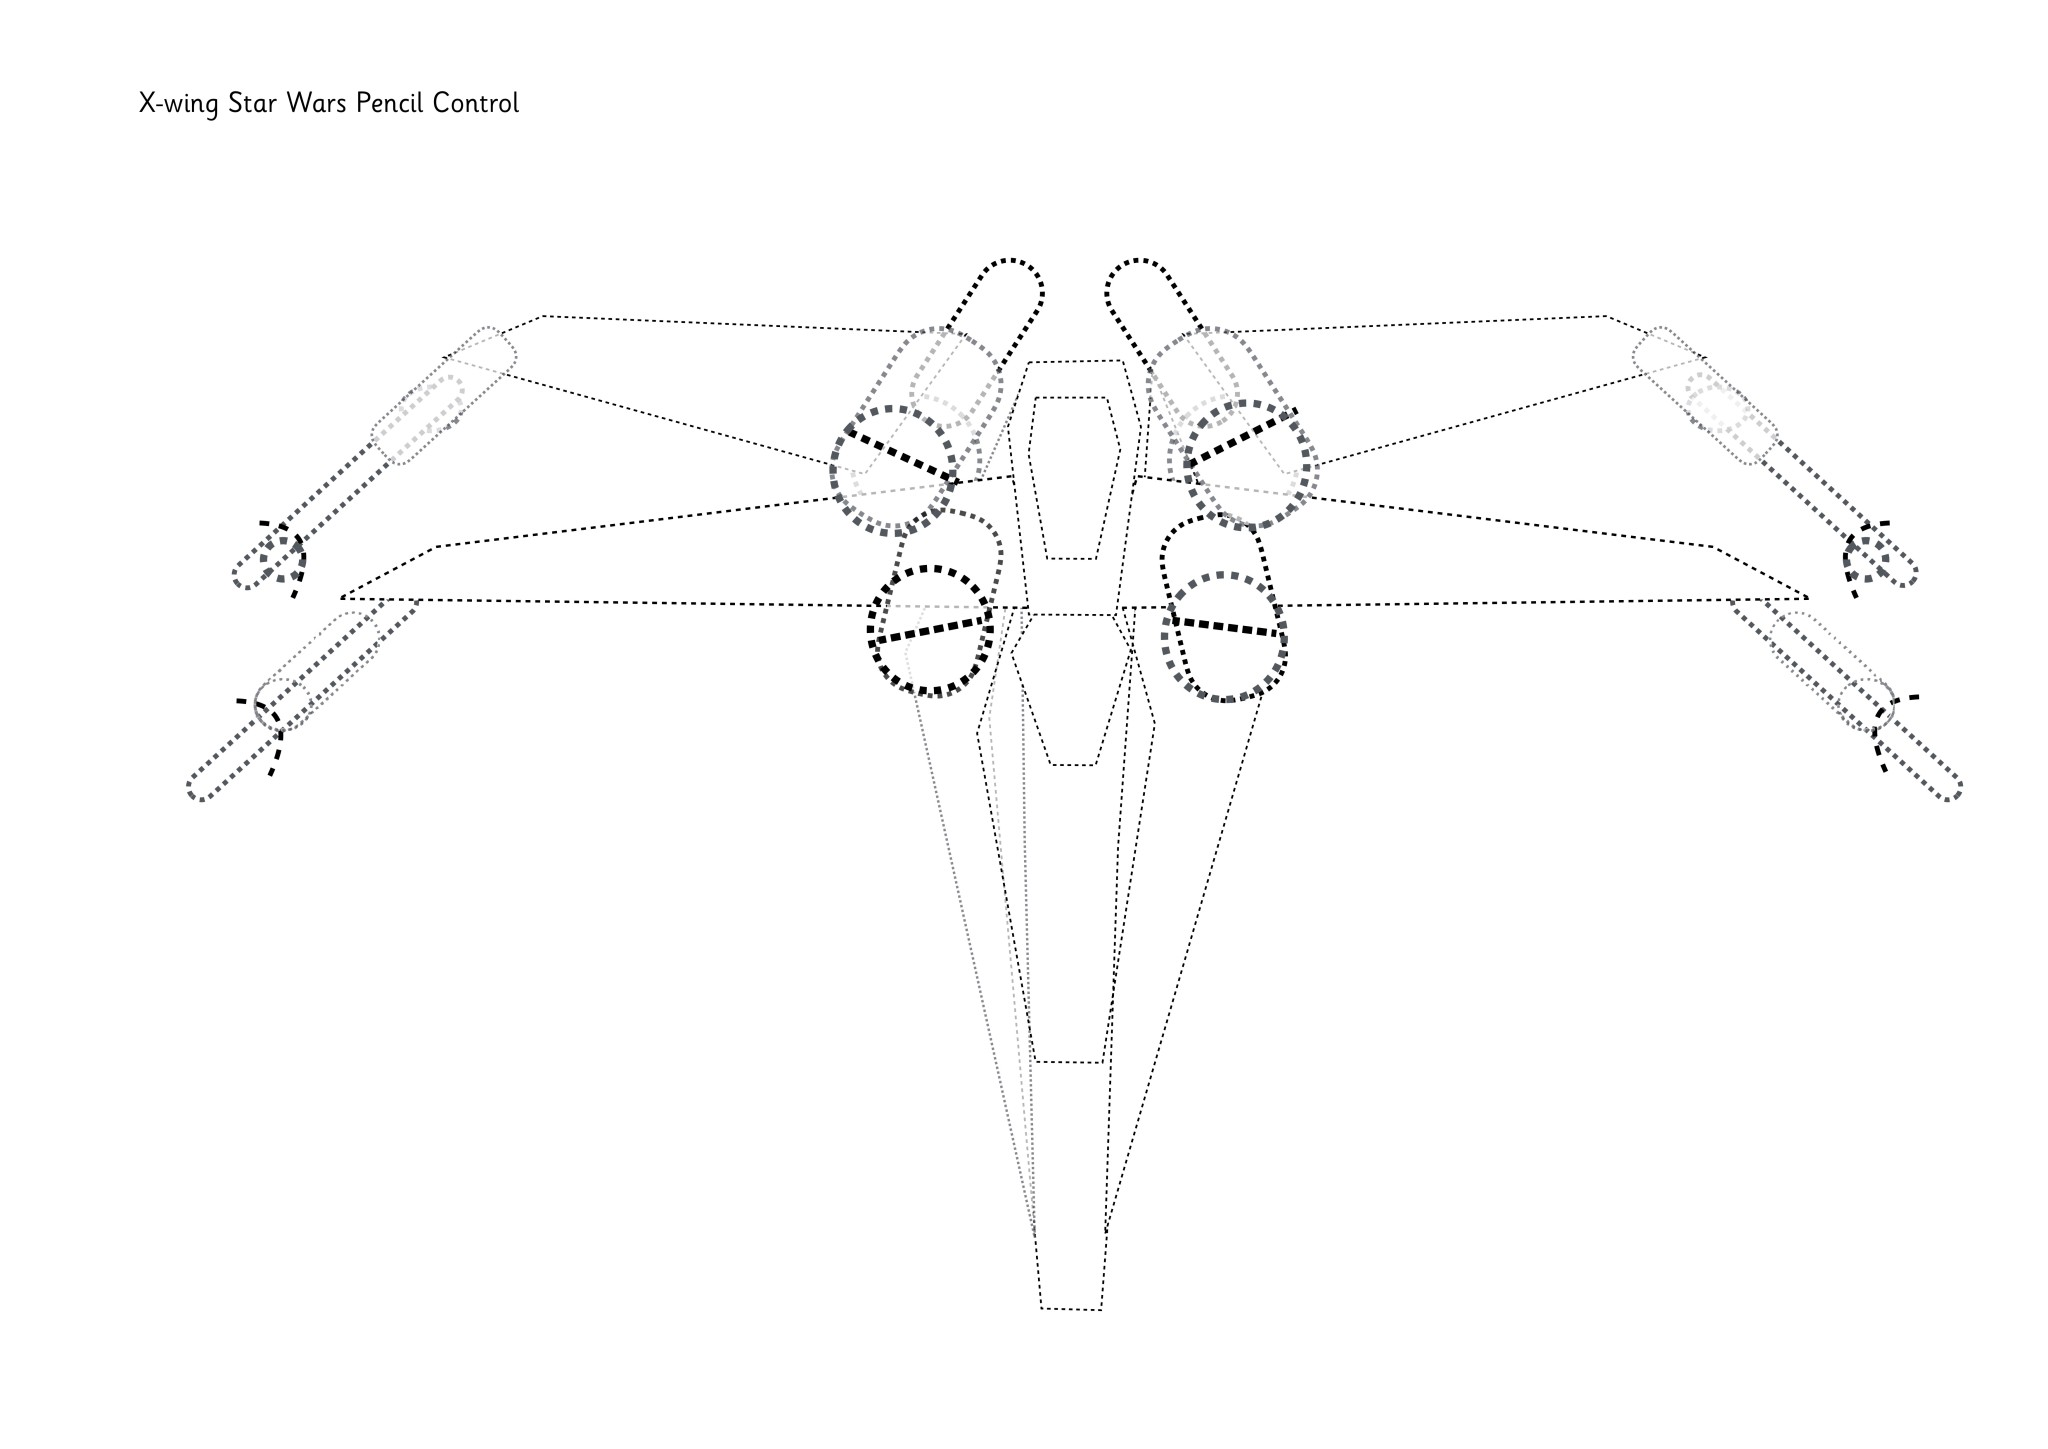 X Wing Star Wars Pencil Control Dot To Dot